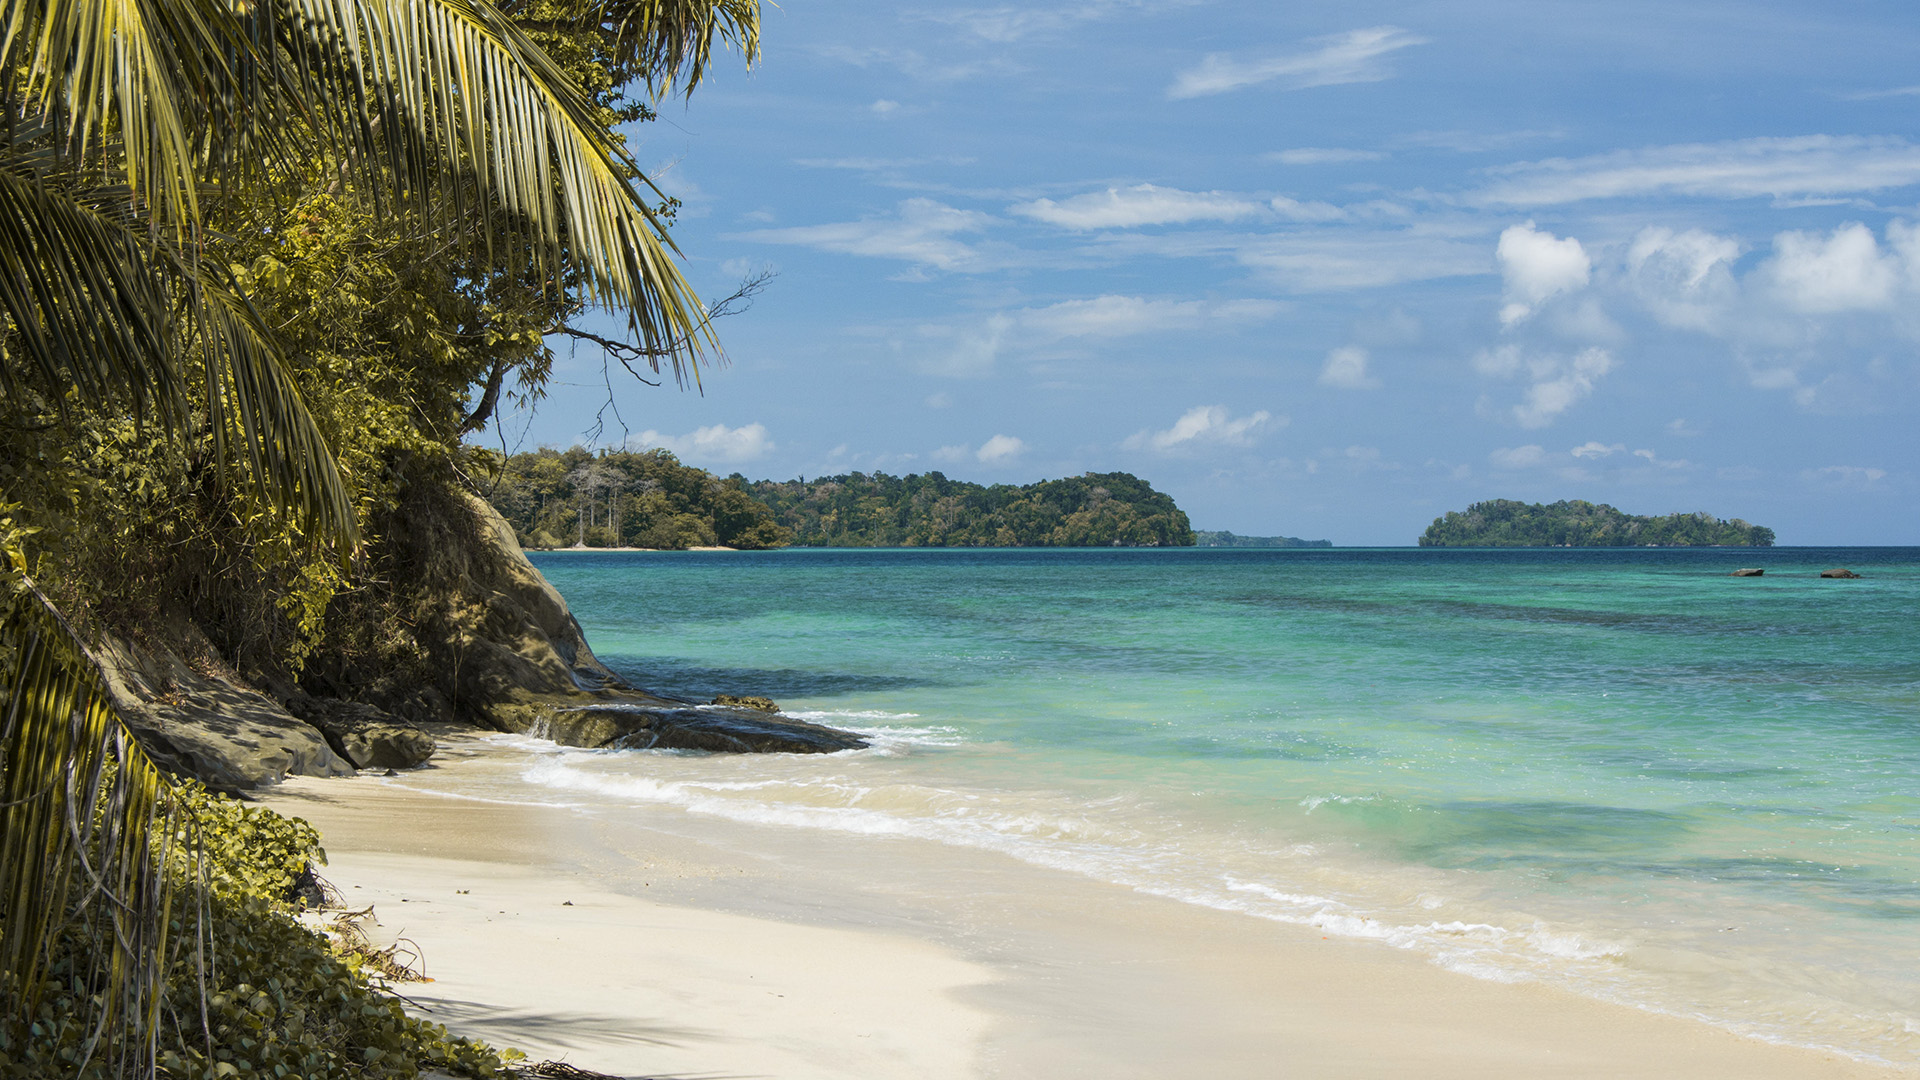 India's Plans Of Mega Projects In Andaman Islands Spark Concerns